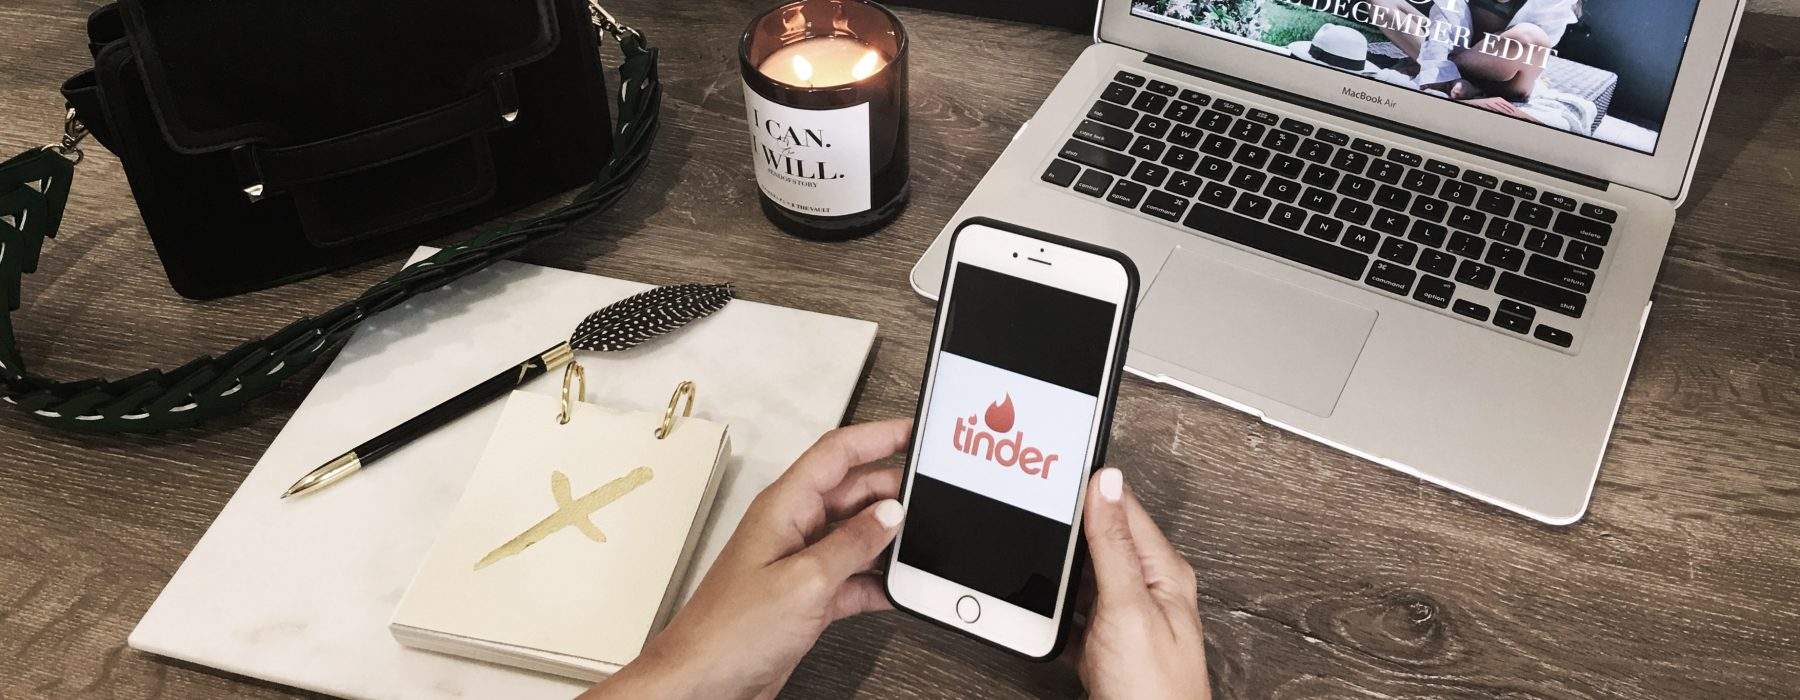 NAILING YOUR VERY OWN DATING PROFILE (Swipe Right, Chat, Repeat)